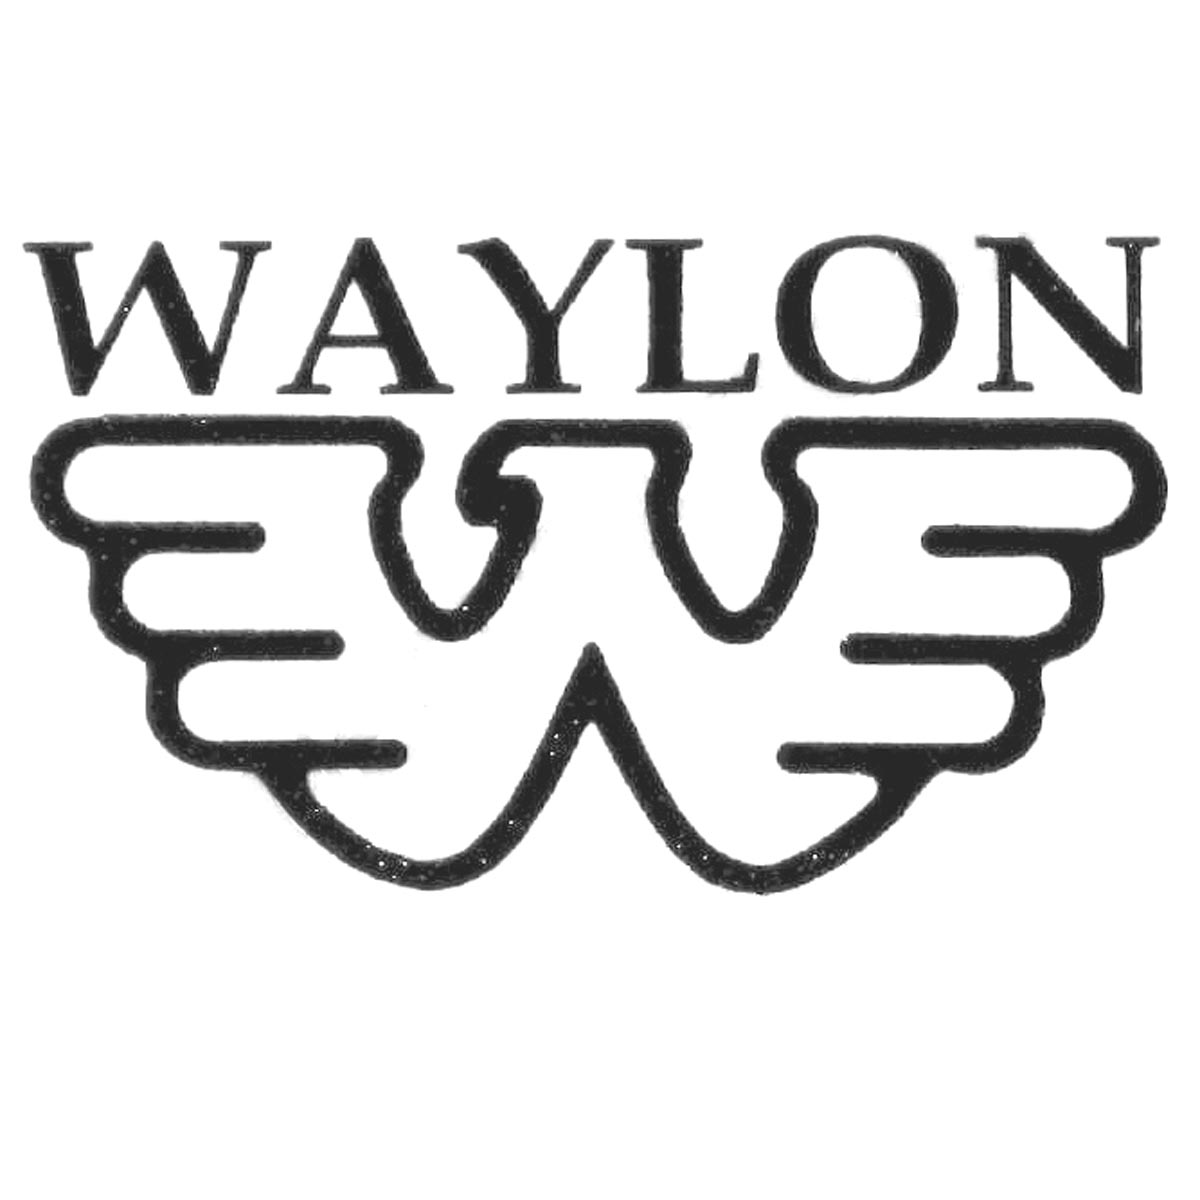 Waylon Jennings Headstock Waterslide Decal